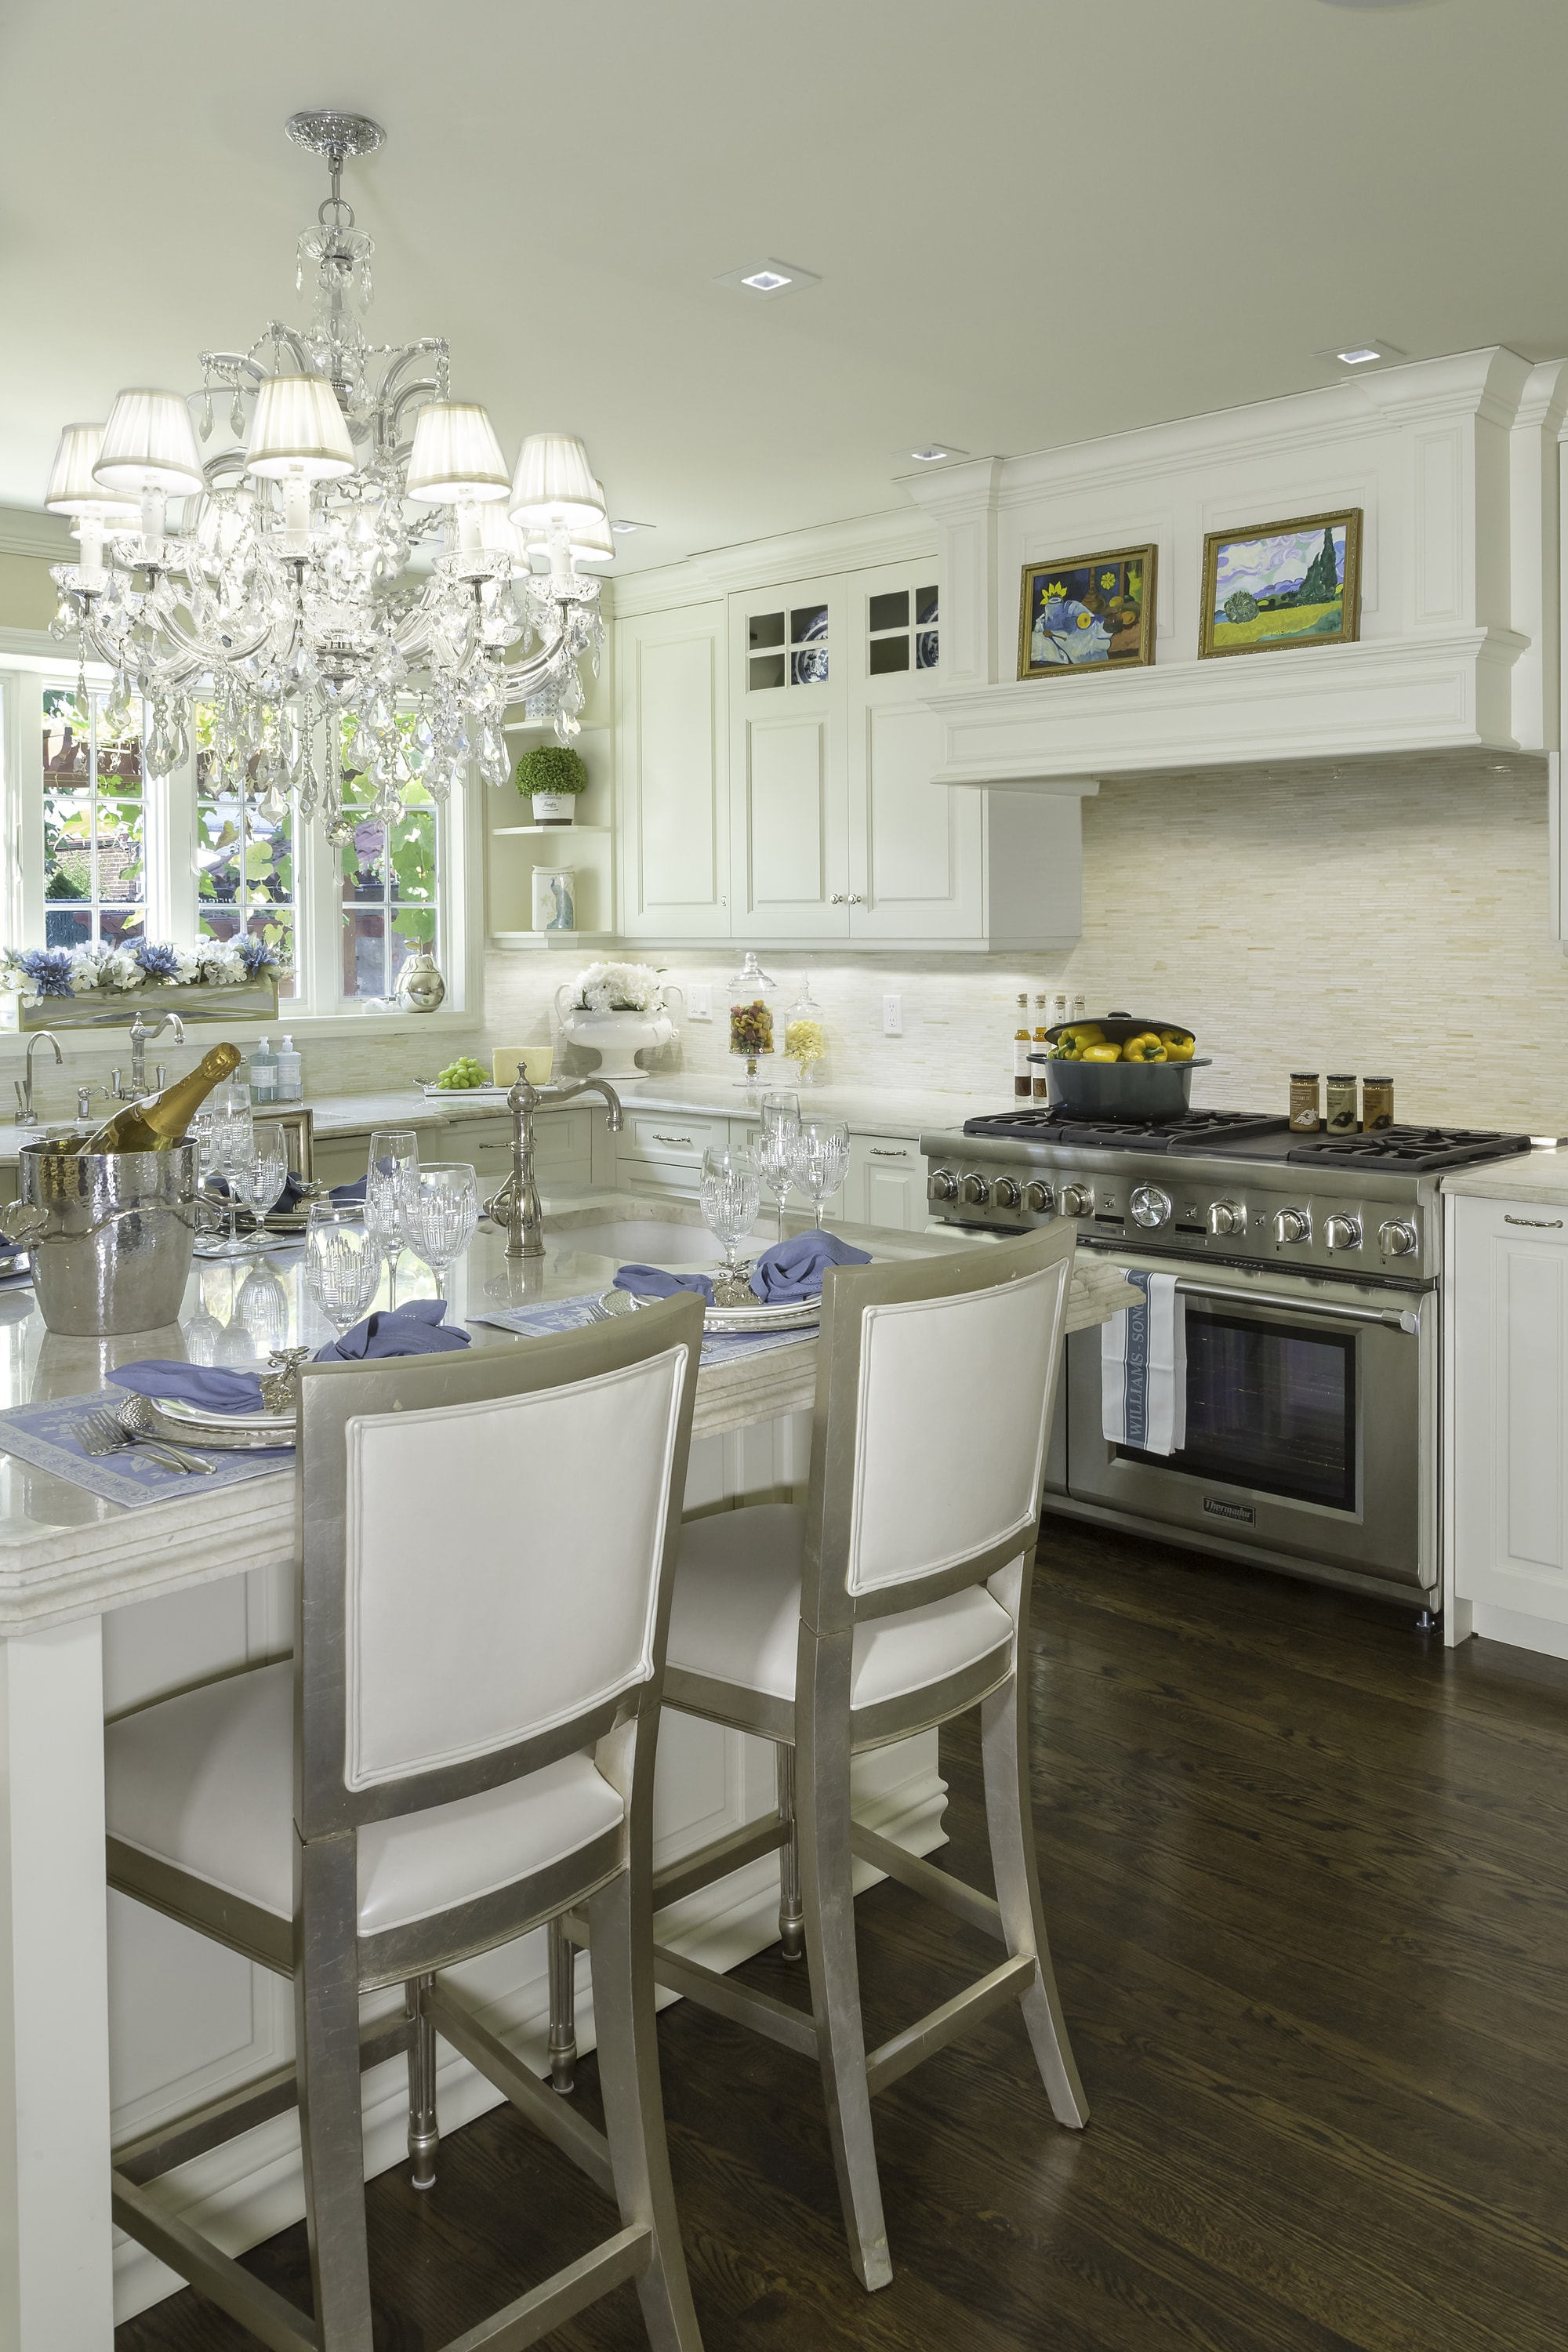 Traditional style kitchen with white kitchen cabinets and breakfast table